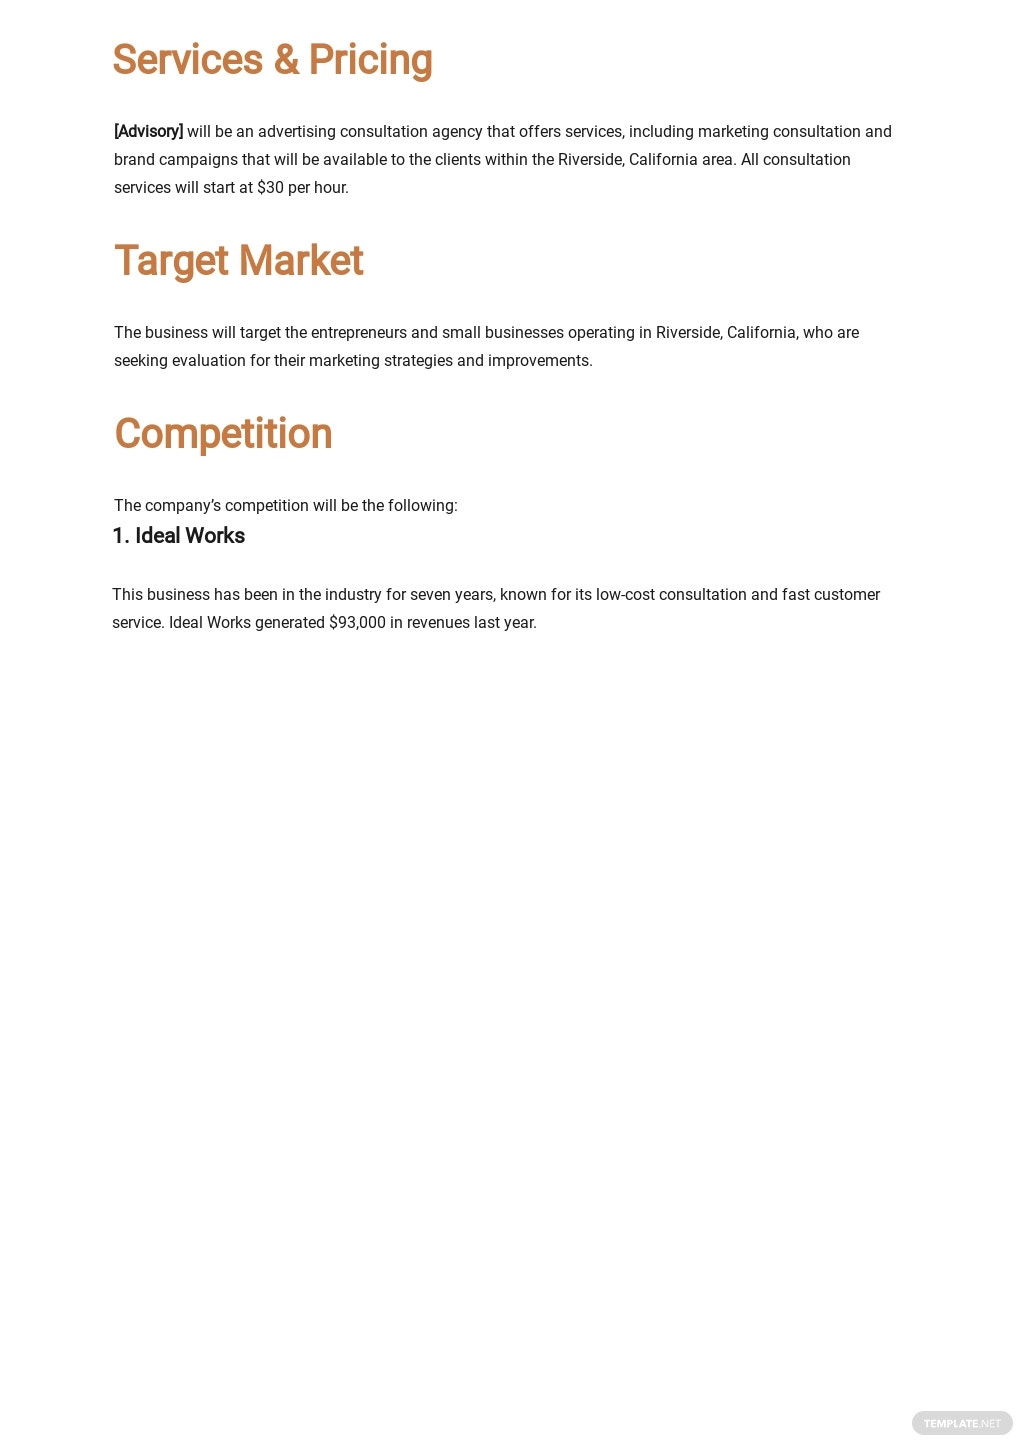 Advertising Consulting Business Plan Template 2.jpe